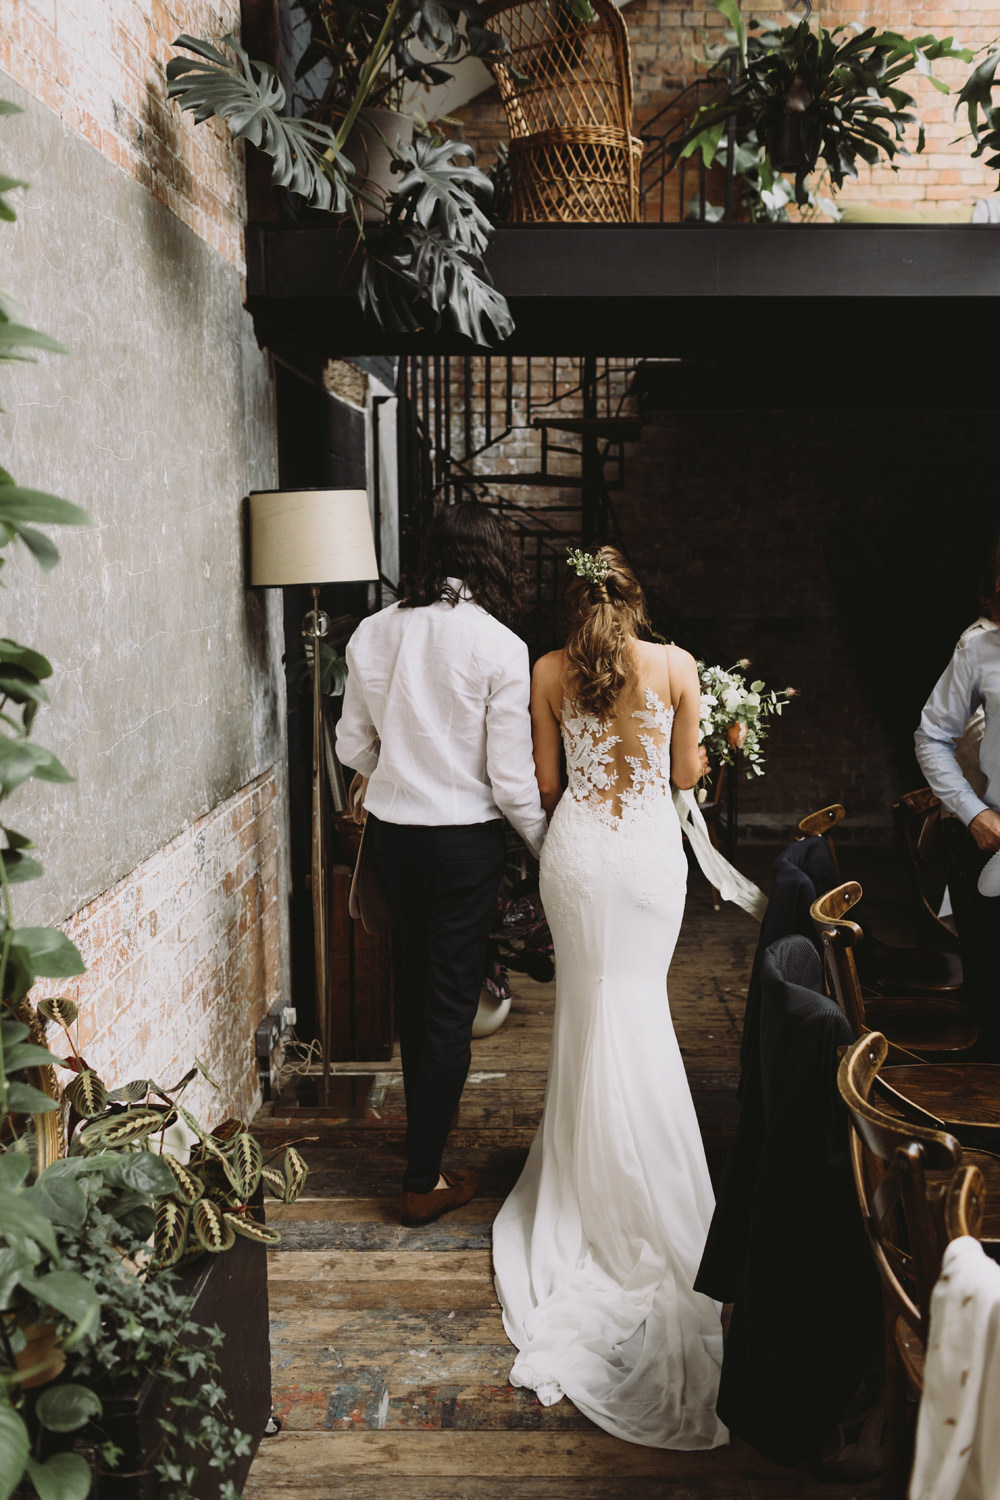 Bride Bridal Sleeveless V Neck Fit and Flare Train Pronovias Dress Gown Illusion Back Lace Reiss Groom Wild Bouquet Loose Handtied Rose Tram House Wedding Luke Hayden Photography